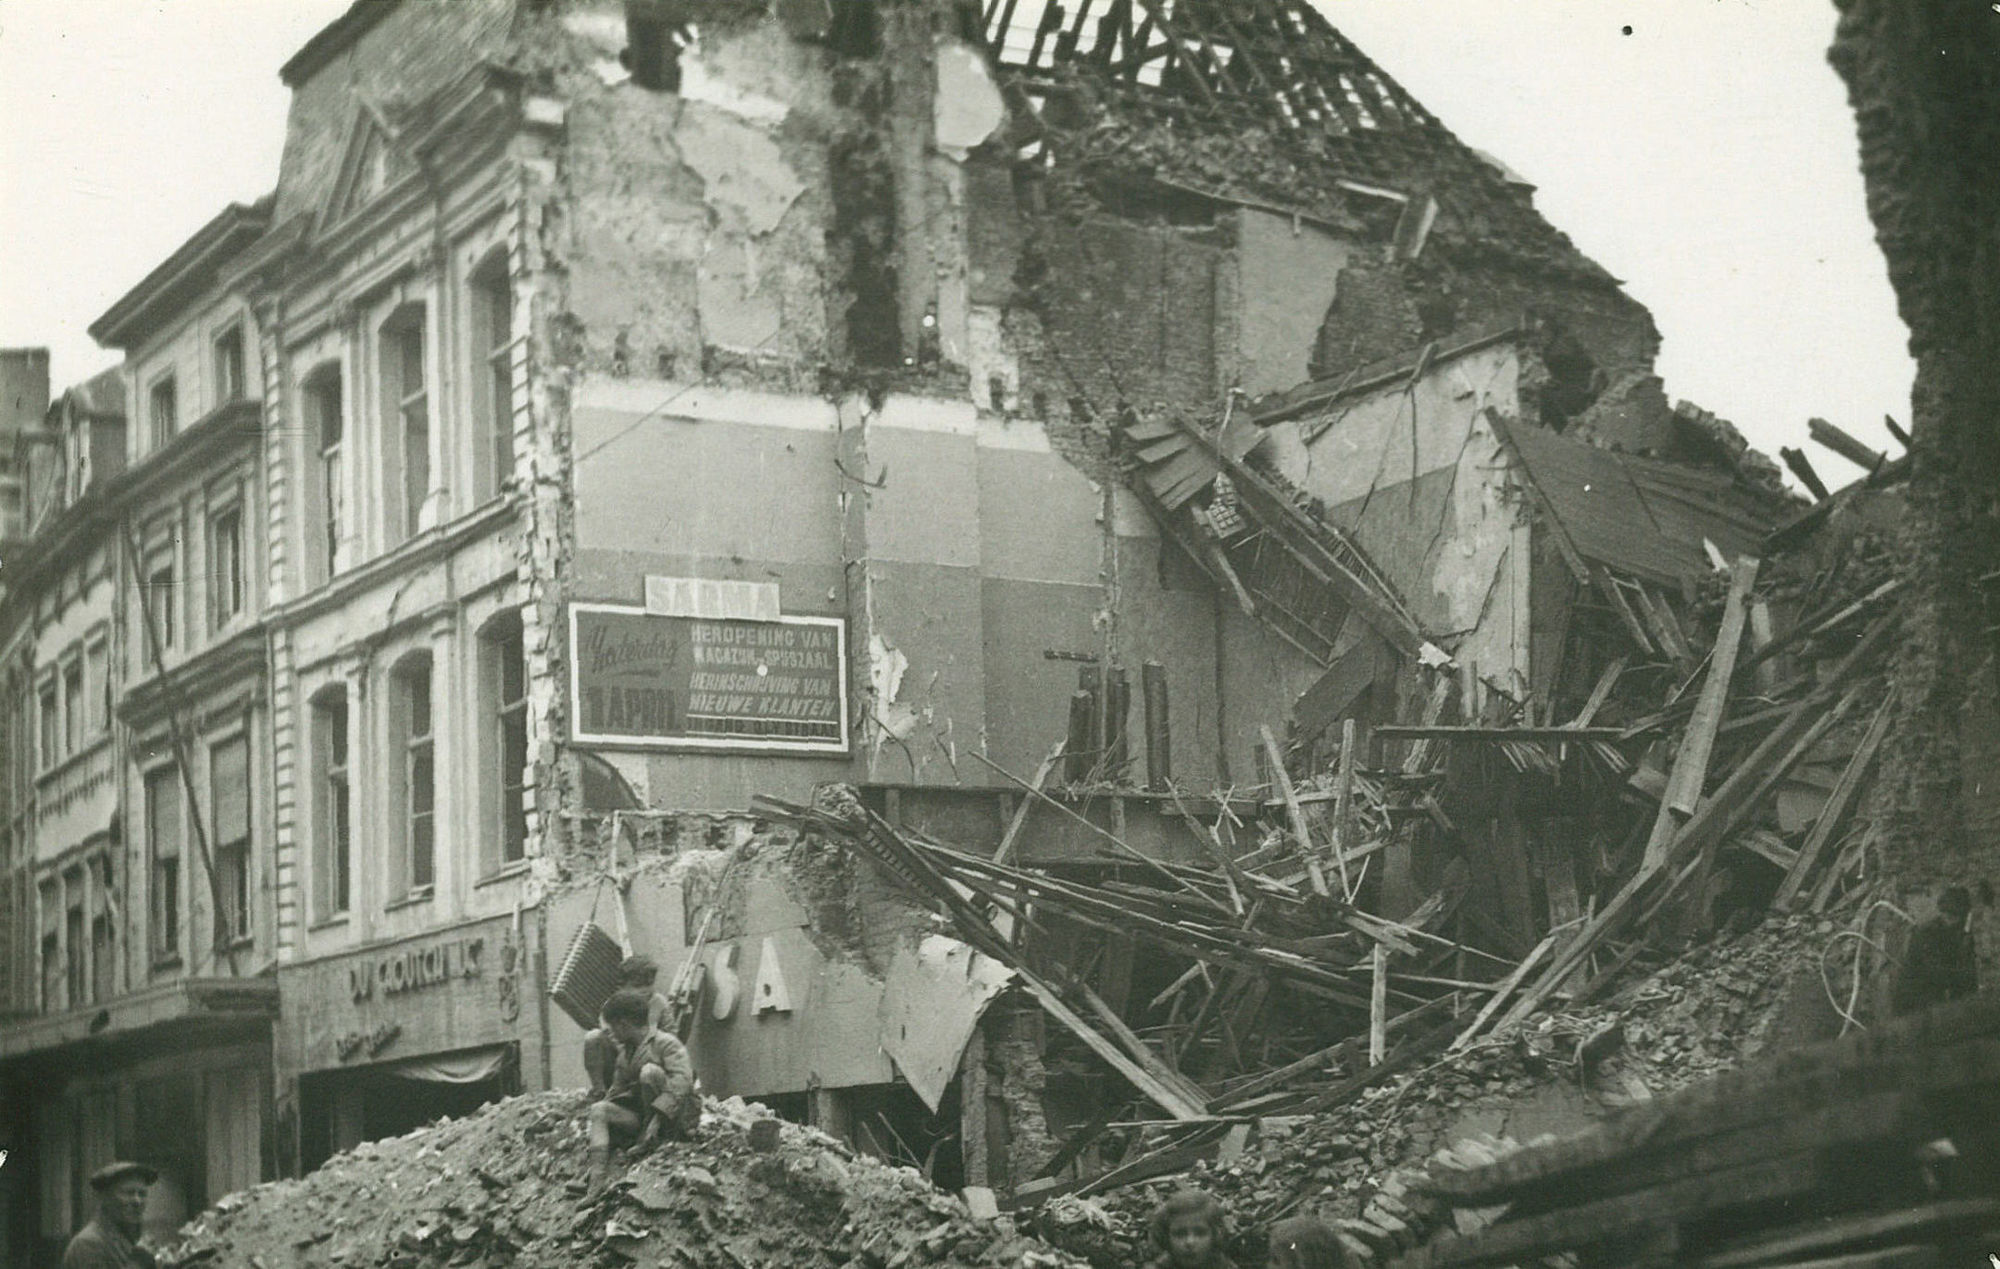 Sarma in de Leiestraat in 1944